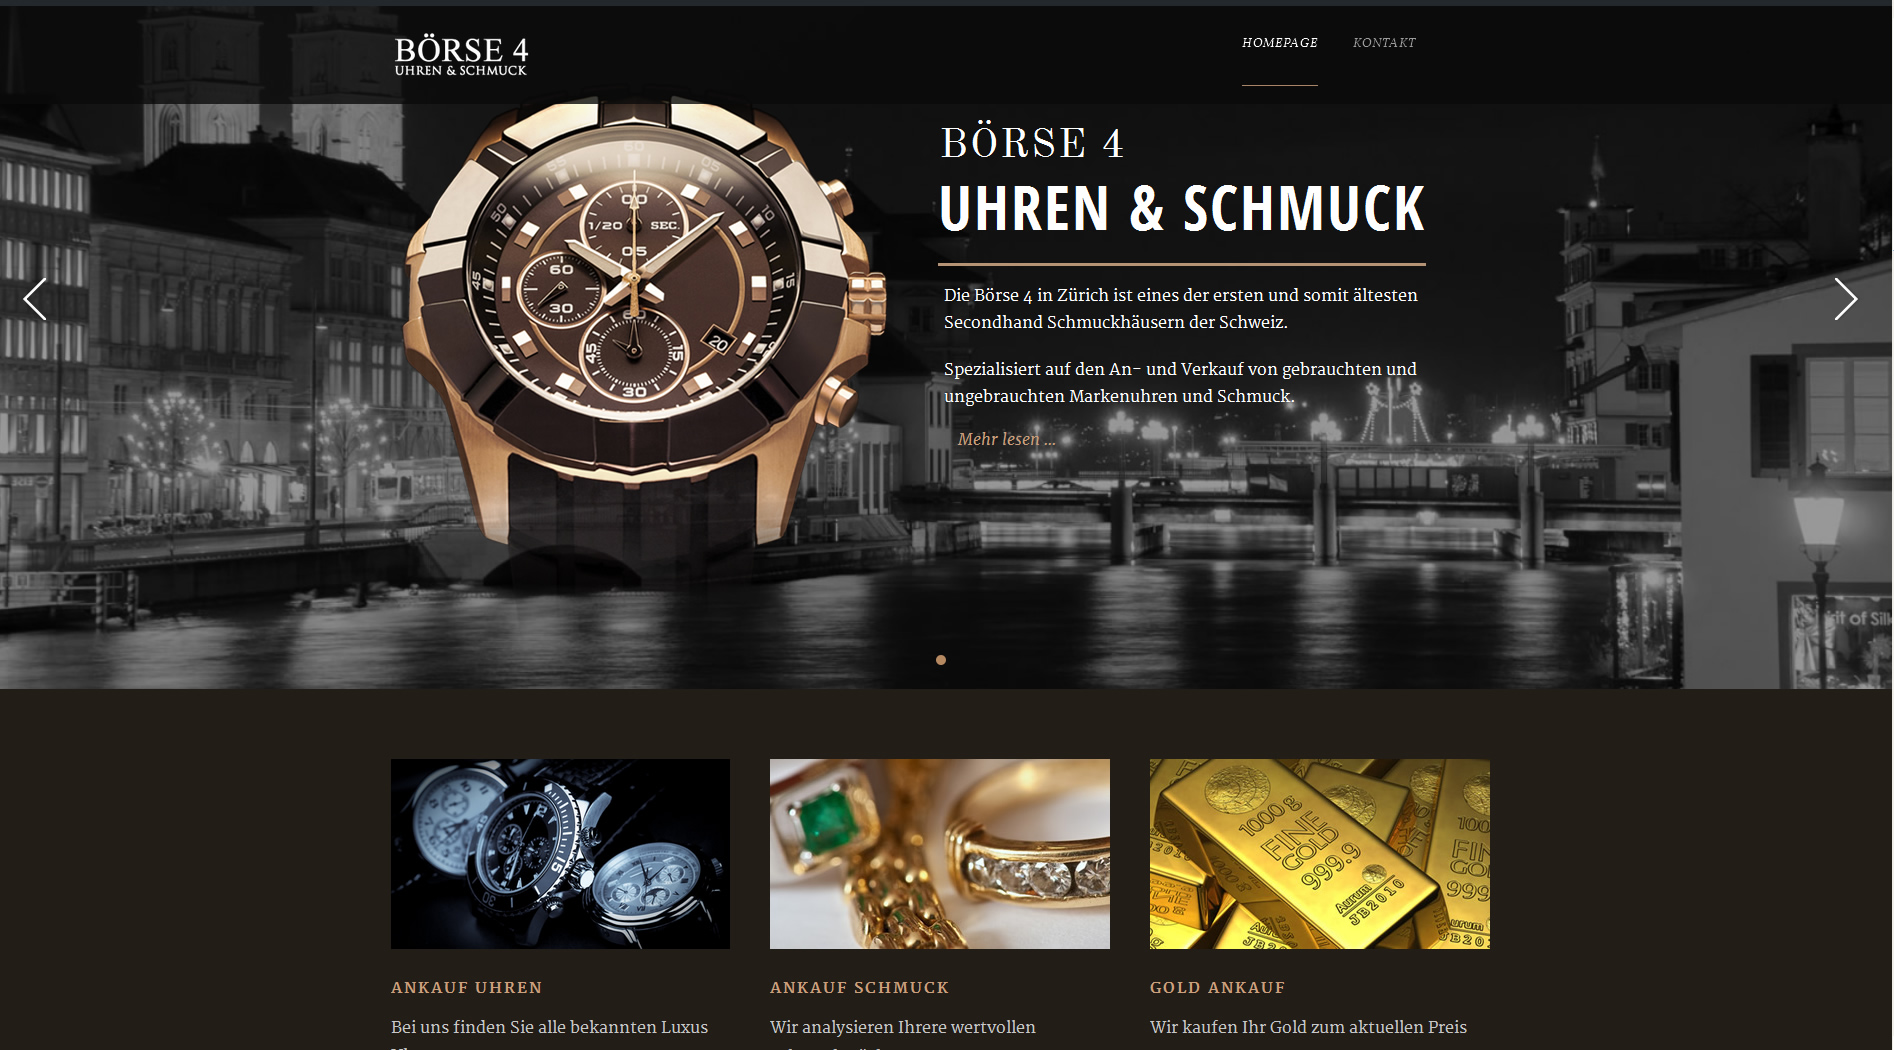 neue website b rse4 ankauf uhren ankauf schmuck ankauf gold z rich. Black Bedroom Furniture Sets. Home Design Ideas